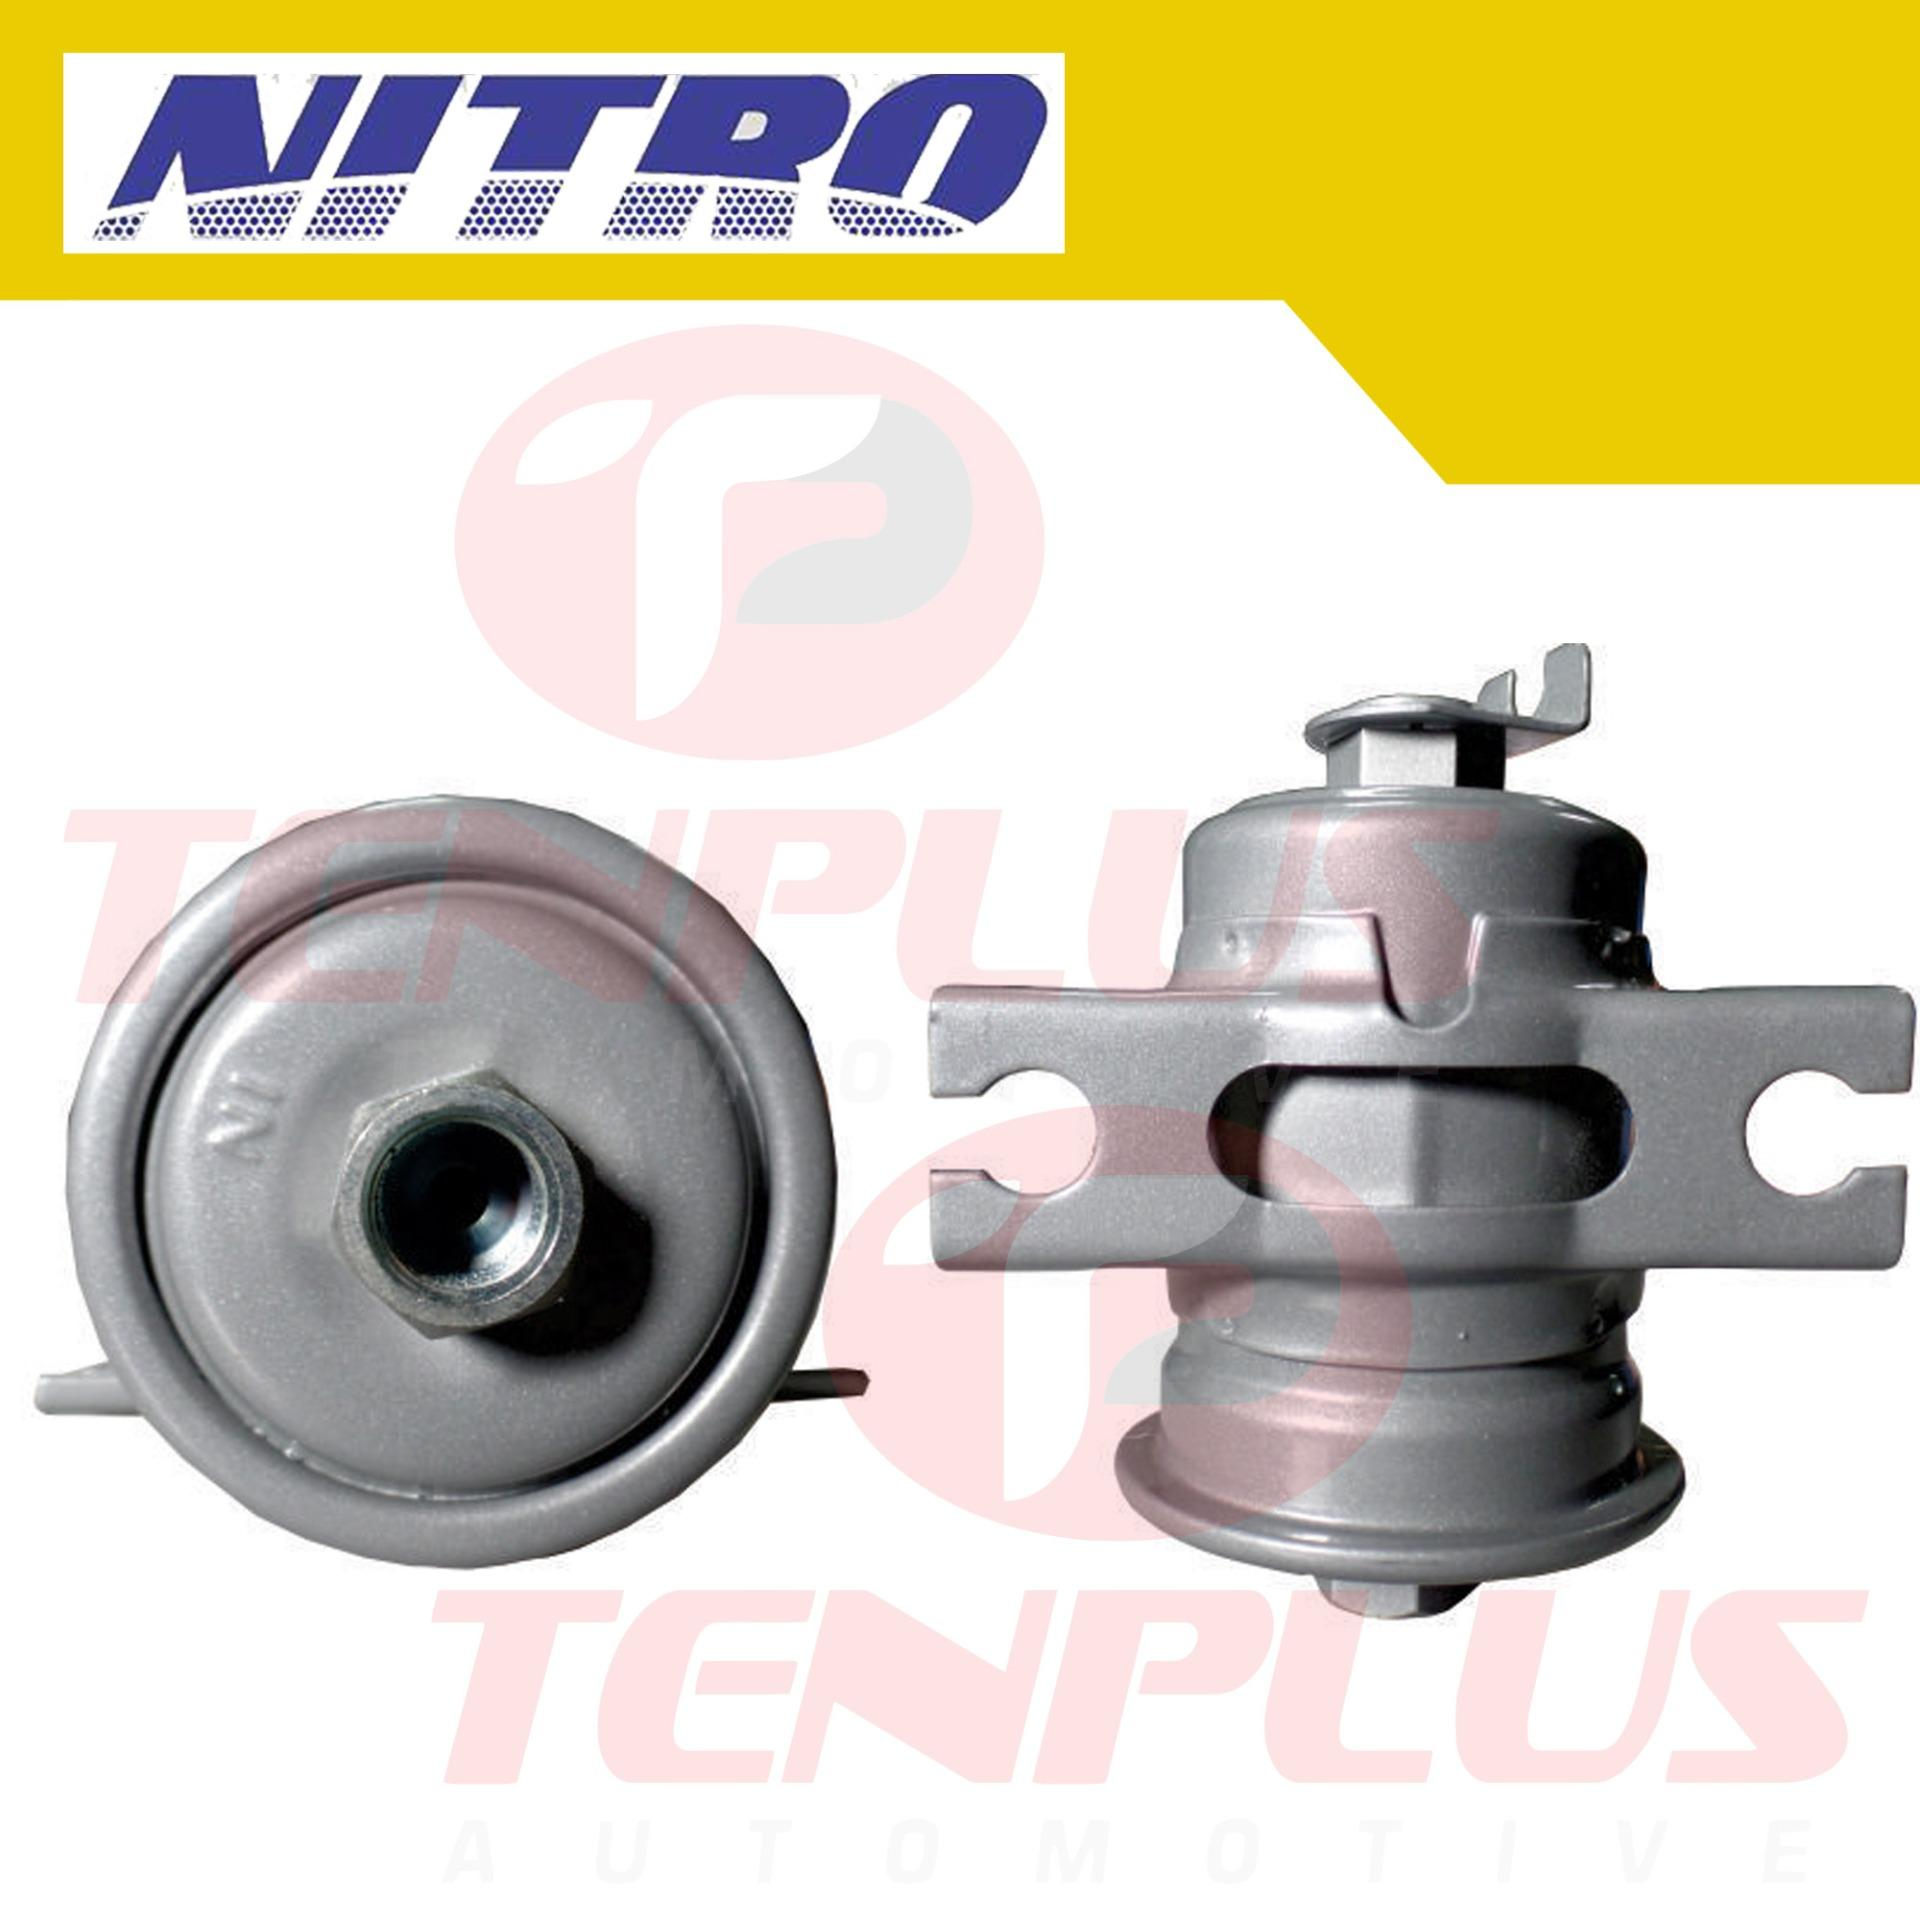 Fuel Filter For Sale Gas Online Brands Prices Reviews In 2001 Toyota Corolla Nitro 16